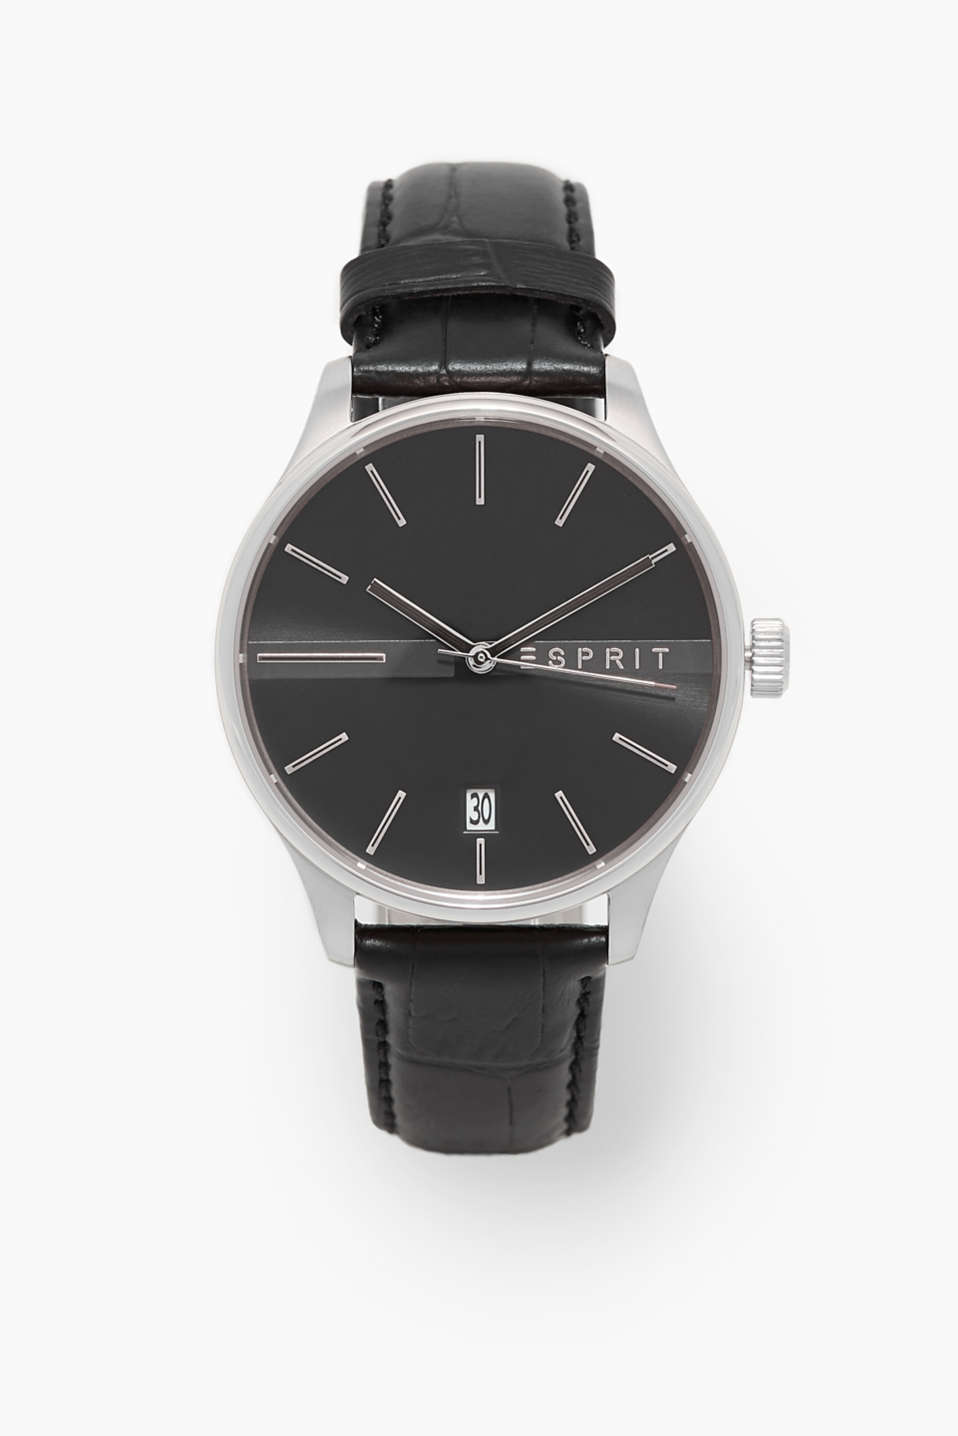 Esprit - Mens watch with embossed leather strap